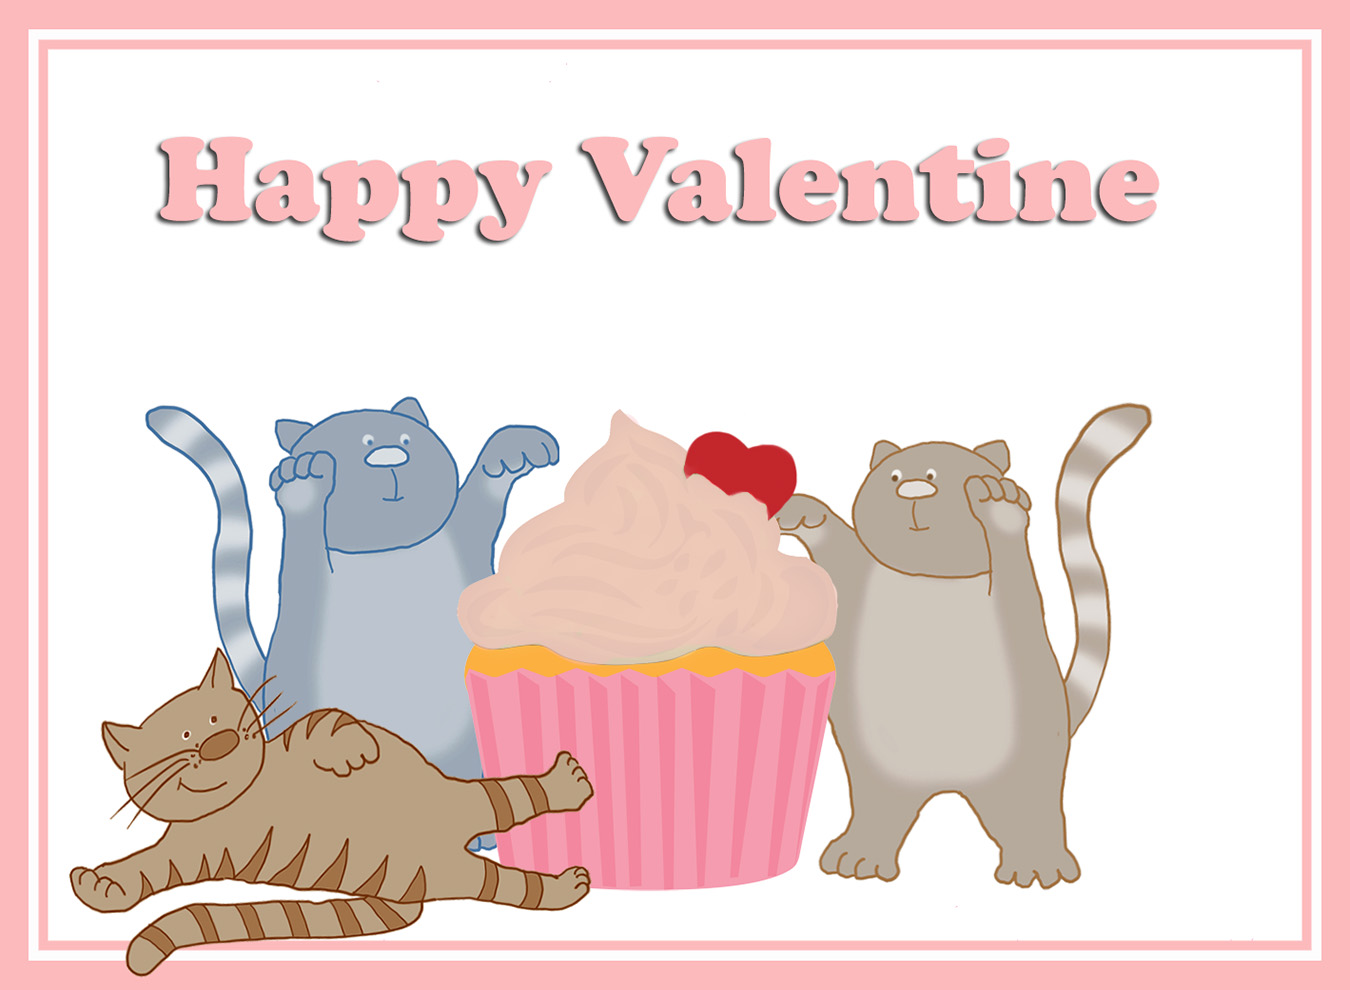 Valentine card with cupcake and cats